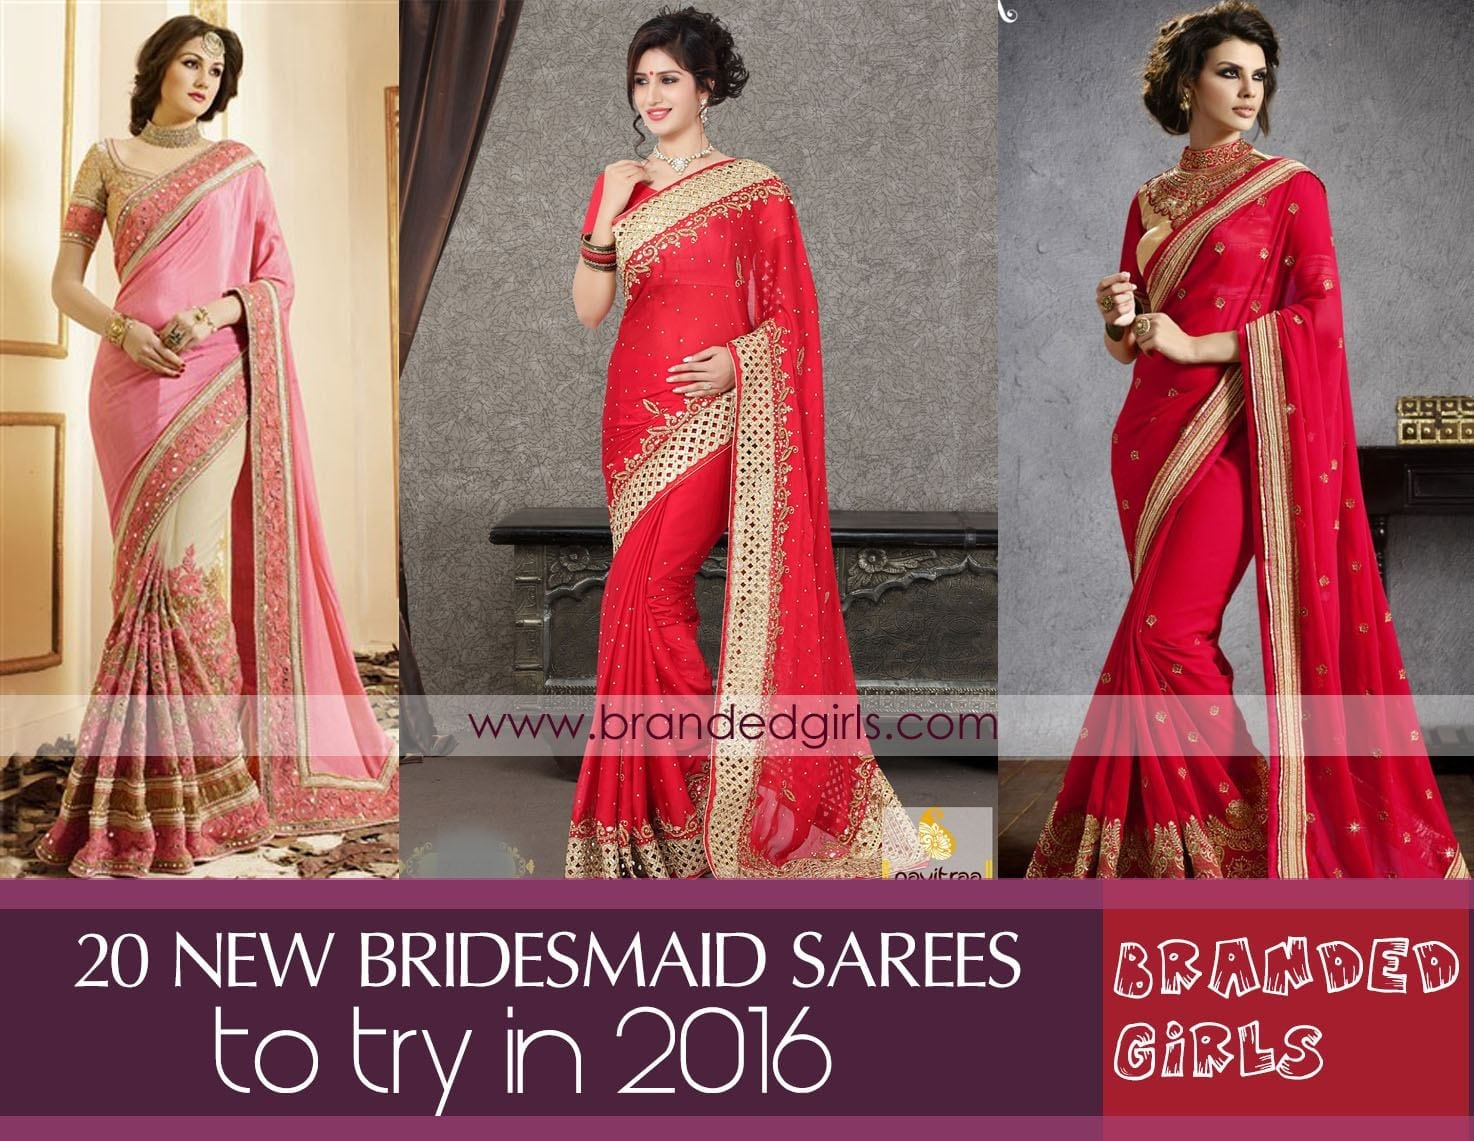 bridesmaid-sarees Latest Bridesmaid Saree Designs-20 New Styles to try in 2016